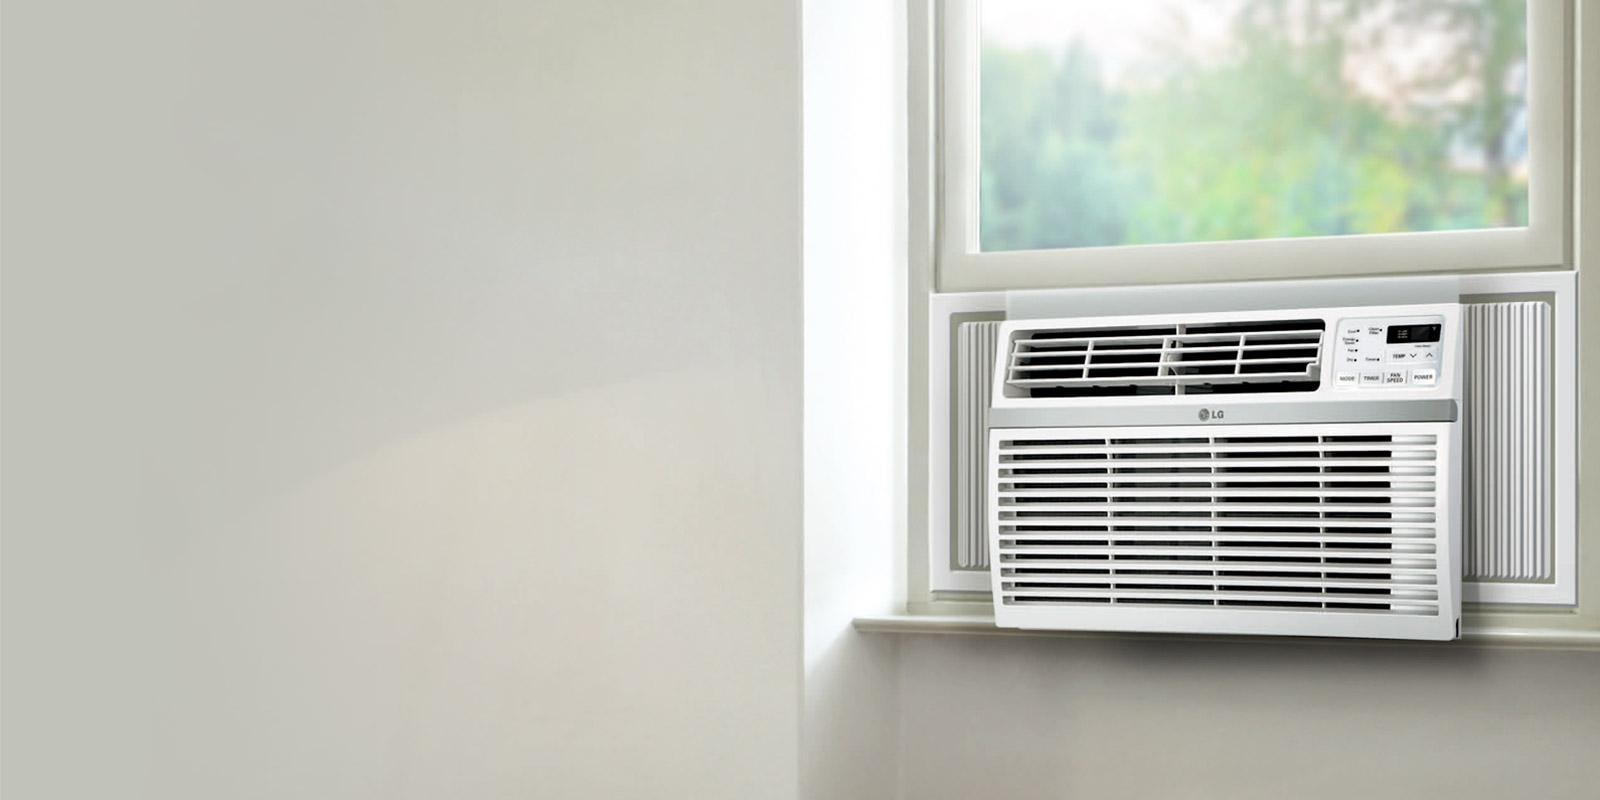 Lg air conditioner units stay cool comfortable lg usa for 12 x 19 window air conditioner